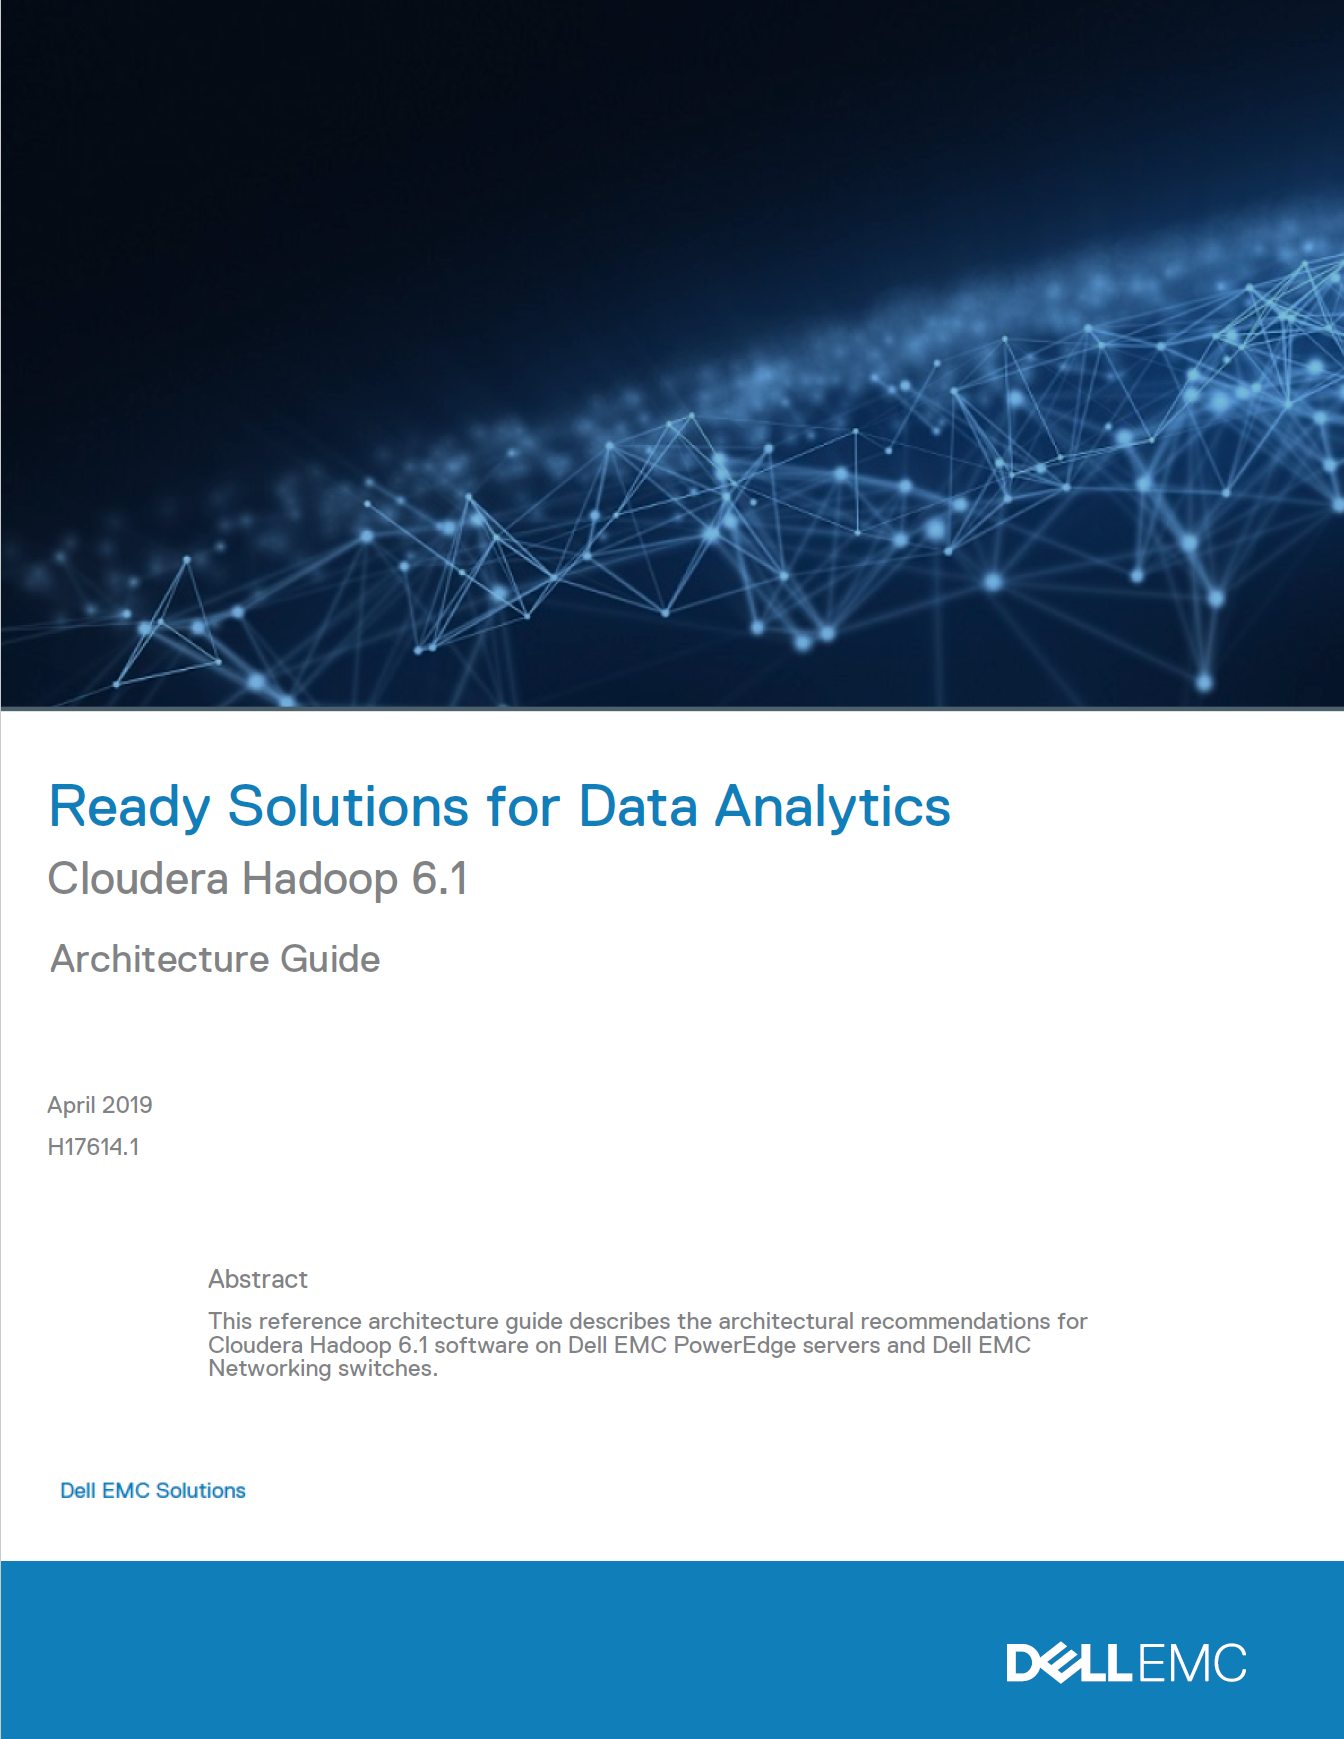 Ready Solutions for Data Analytics : Cloudera Hadoop 6.1 Architecture Guide.pdf